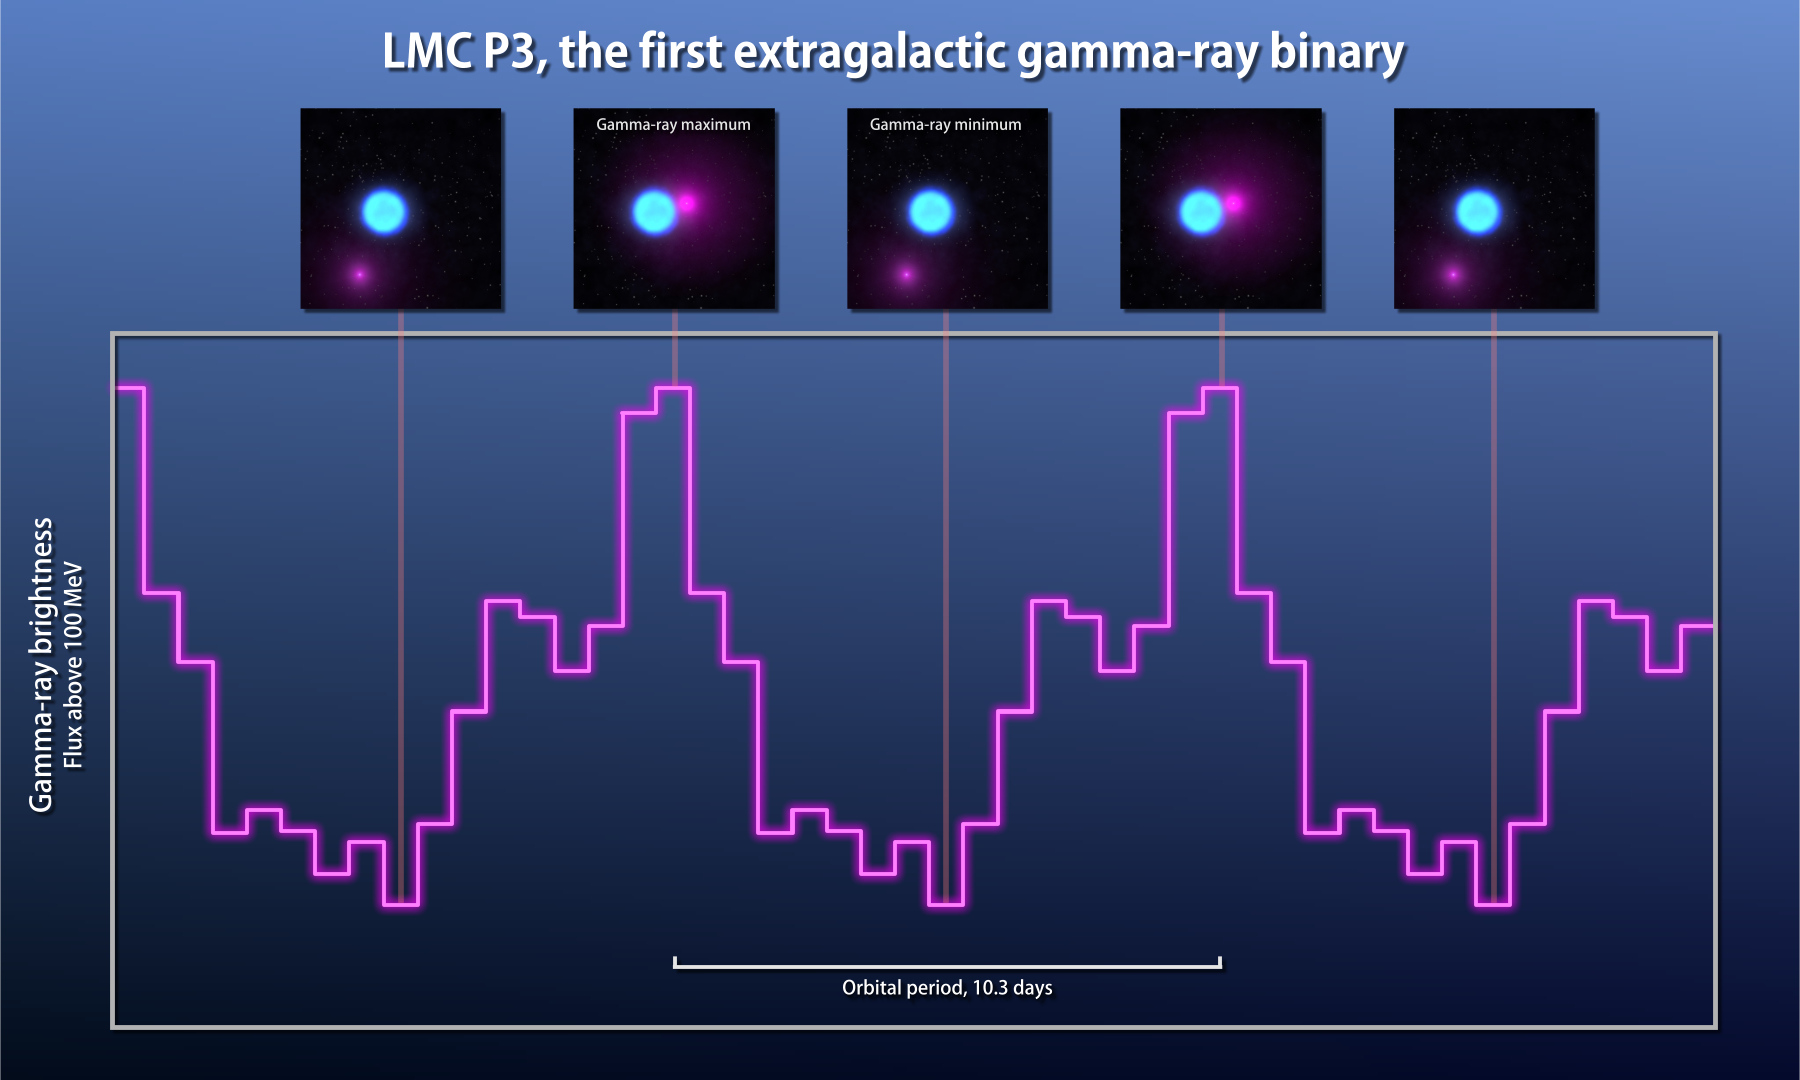 Observations from Fermi's Large Area Telescope (magenta line) show that gamma rays from LMCP3 rise and fall over the course of 10.3days. The companion is thought to be a neutron star. Illustrations across the top show how the changing position of the neutron star relates to the gamma-ray cycle. Illustration credits: NASA's Goddard Space Flight Center.